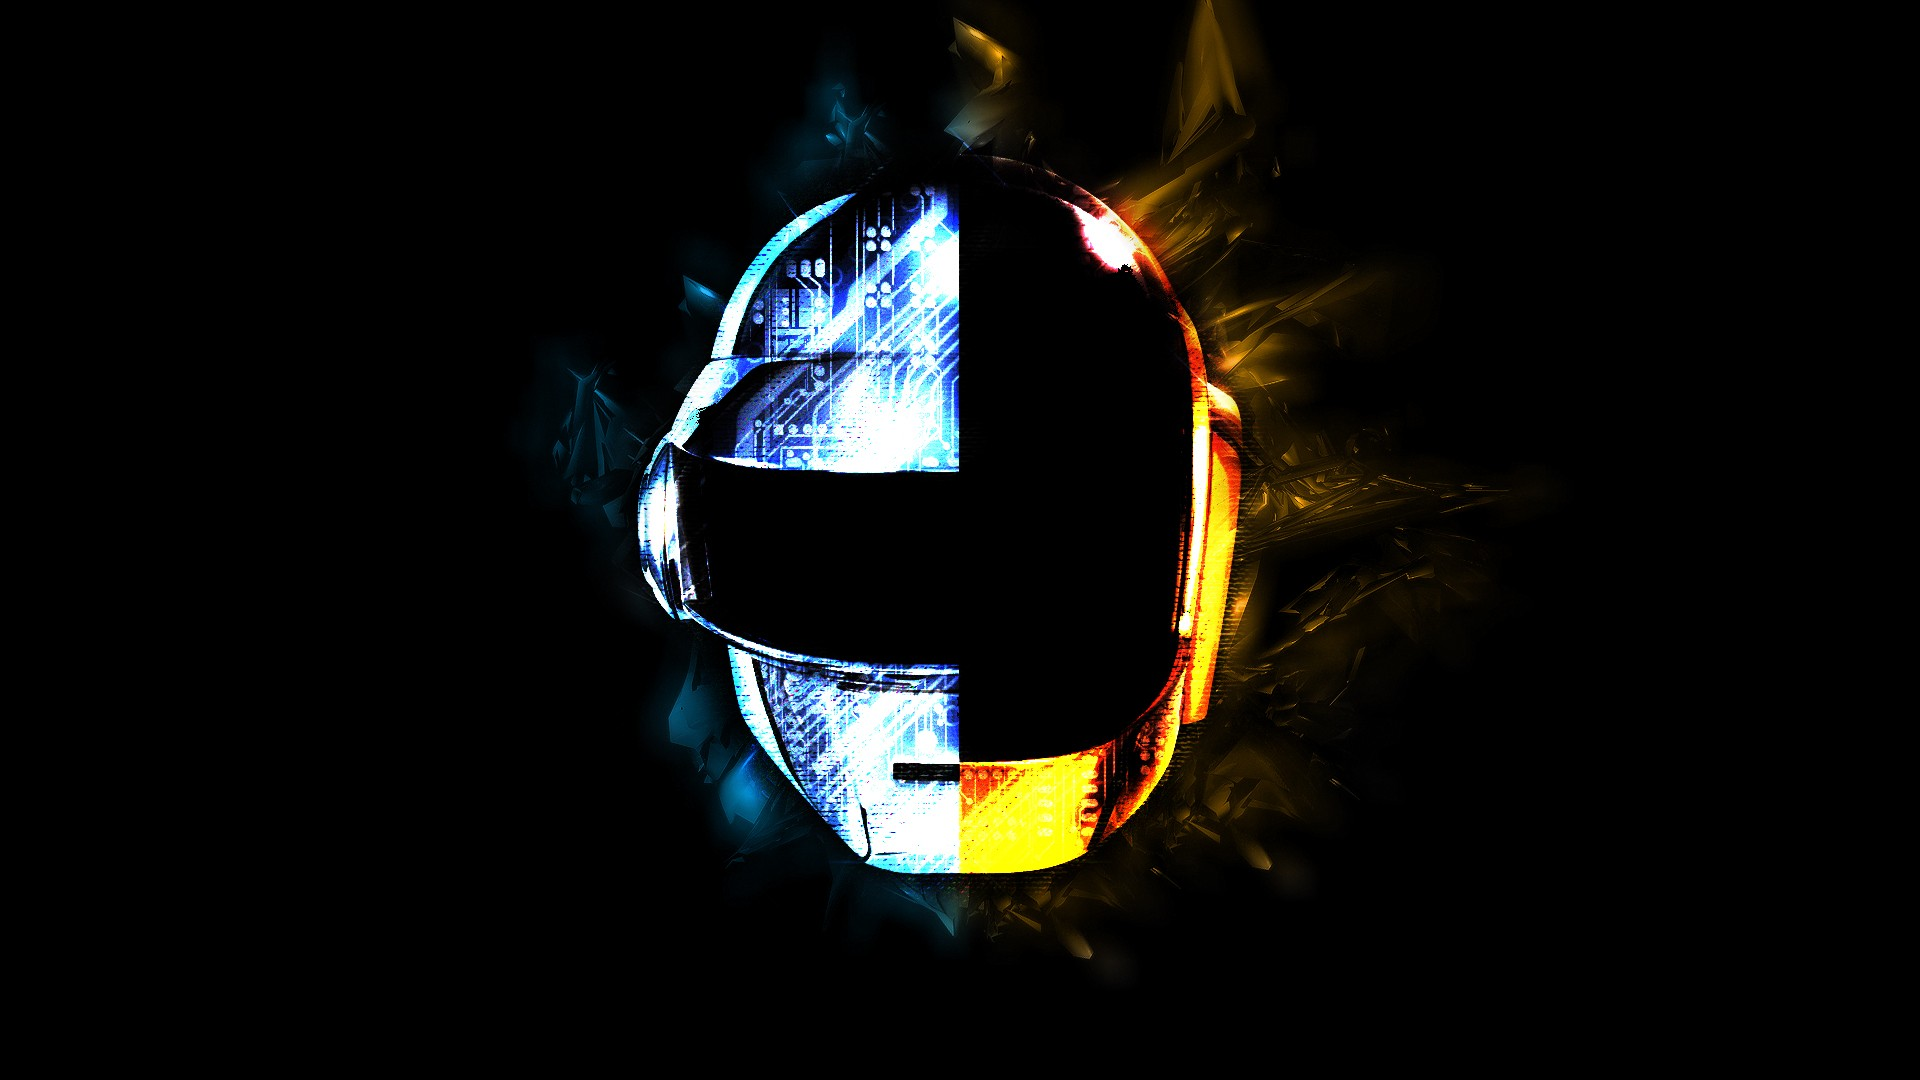 Daft Punk Wallpaper Download Free Awesome Hd Wallpapers For